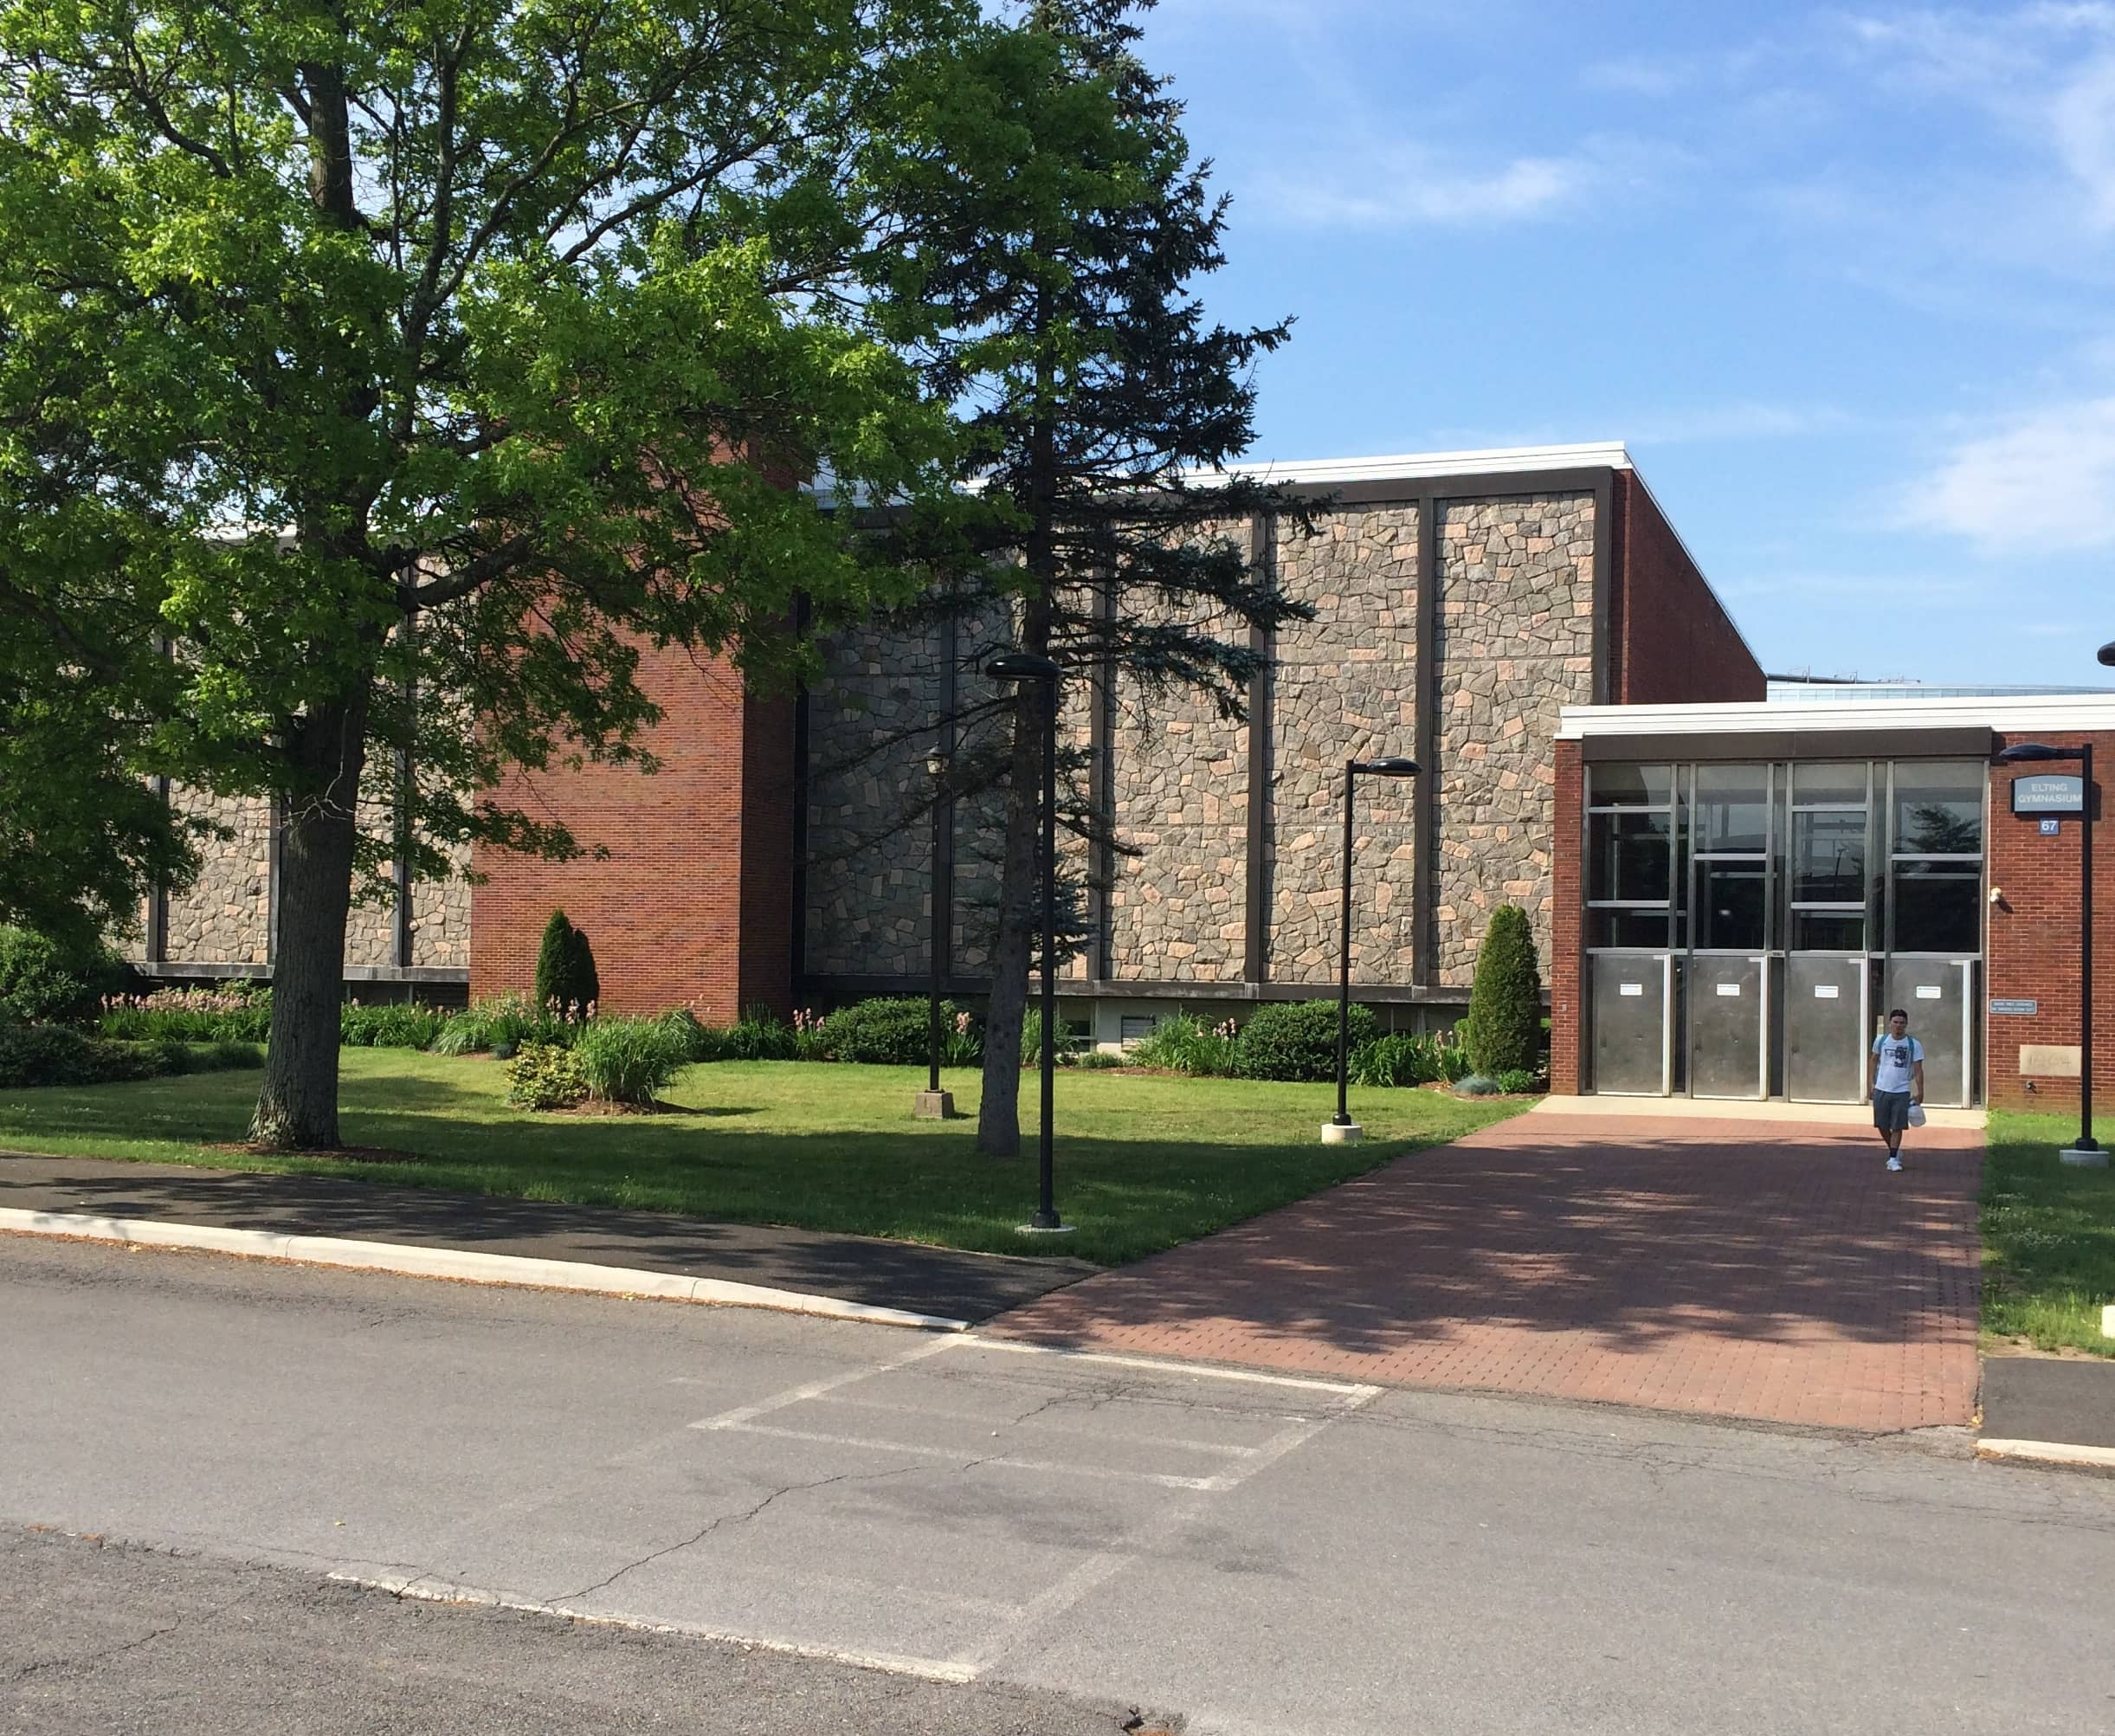 Etling-Gymnasium Solar Microgrid Project Receives Top Grade At New York College Campus